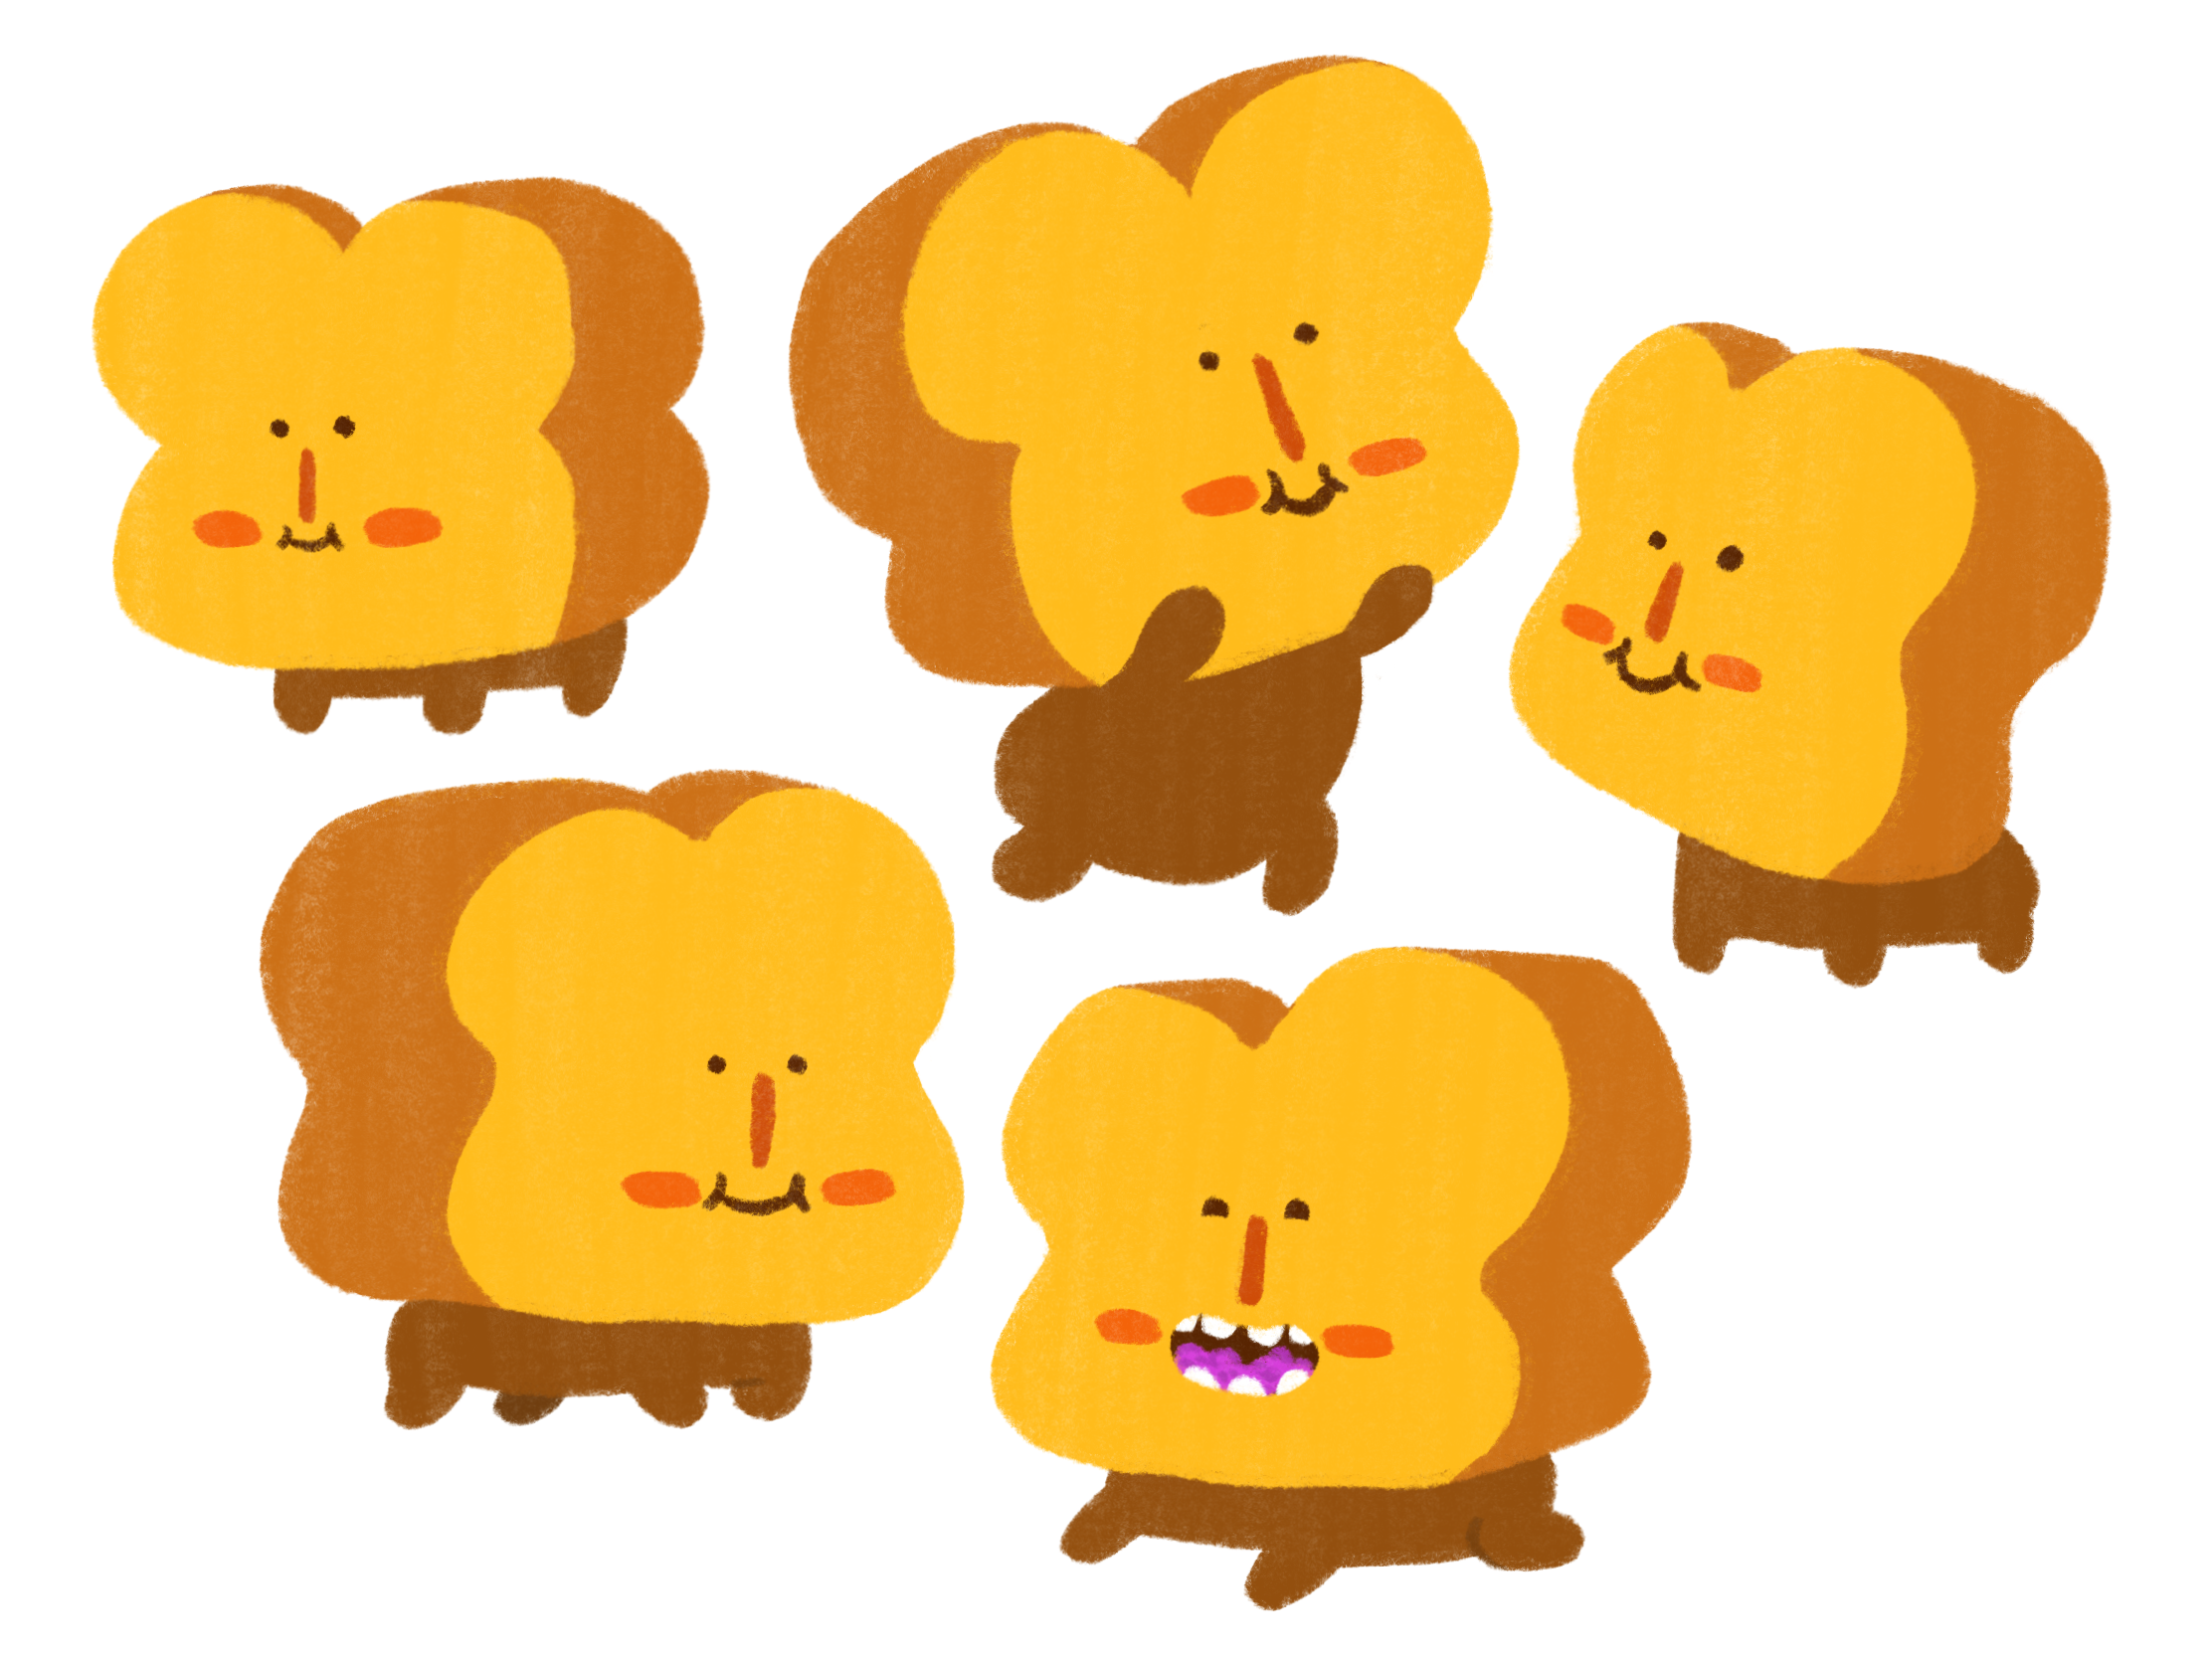 Character Design - Toast Pup